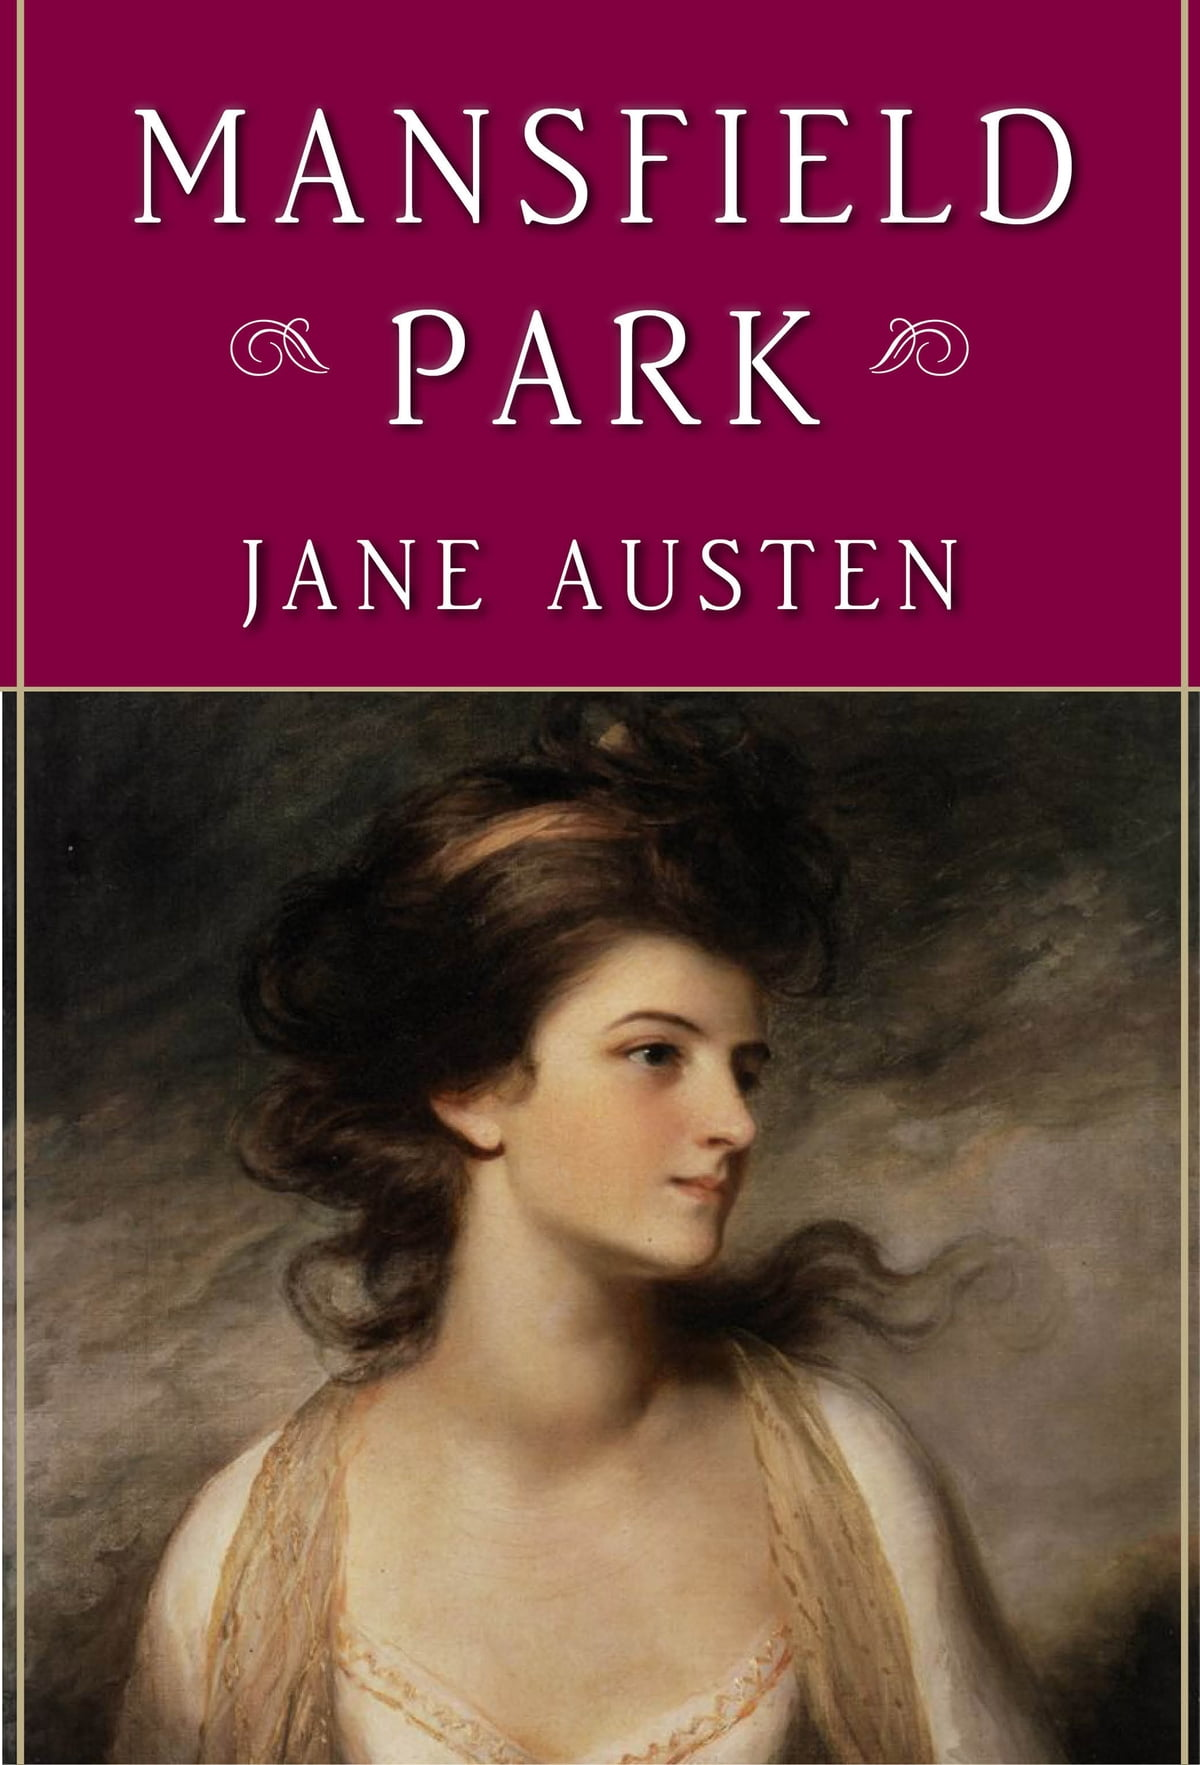 the objectification of women in mansfield park by jane austen Jane austen is beloved the world over for her wit, charm, and keen understanding of the human heart enjoy these jane austen quotes about life, love, society, money, marriage, and more read.